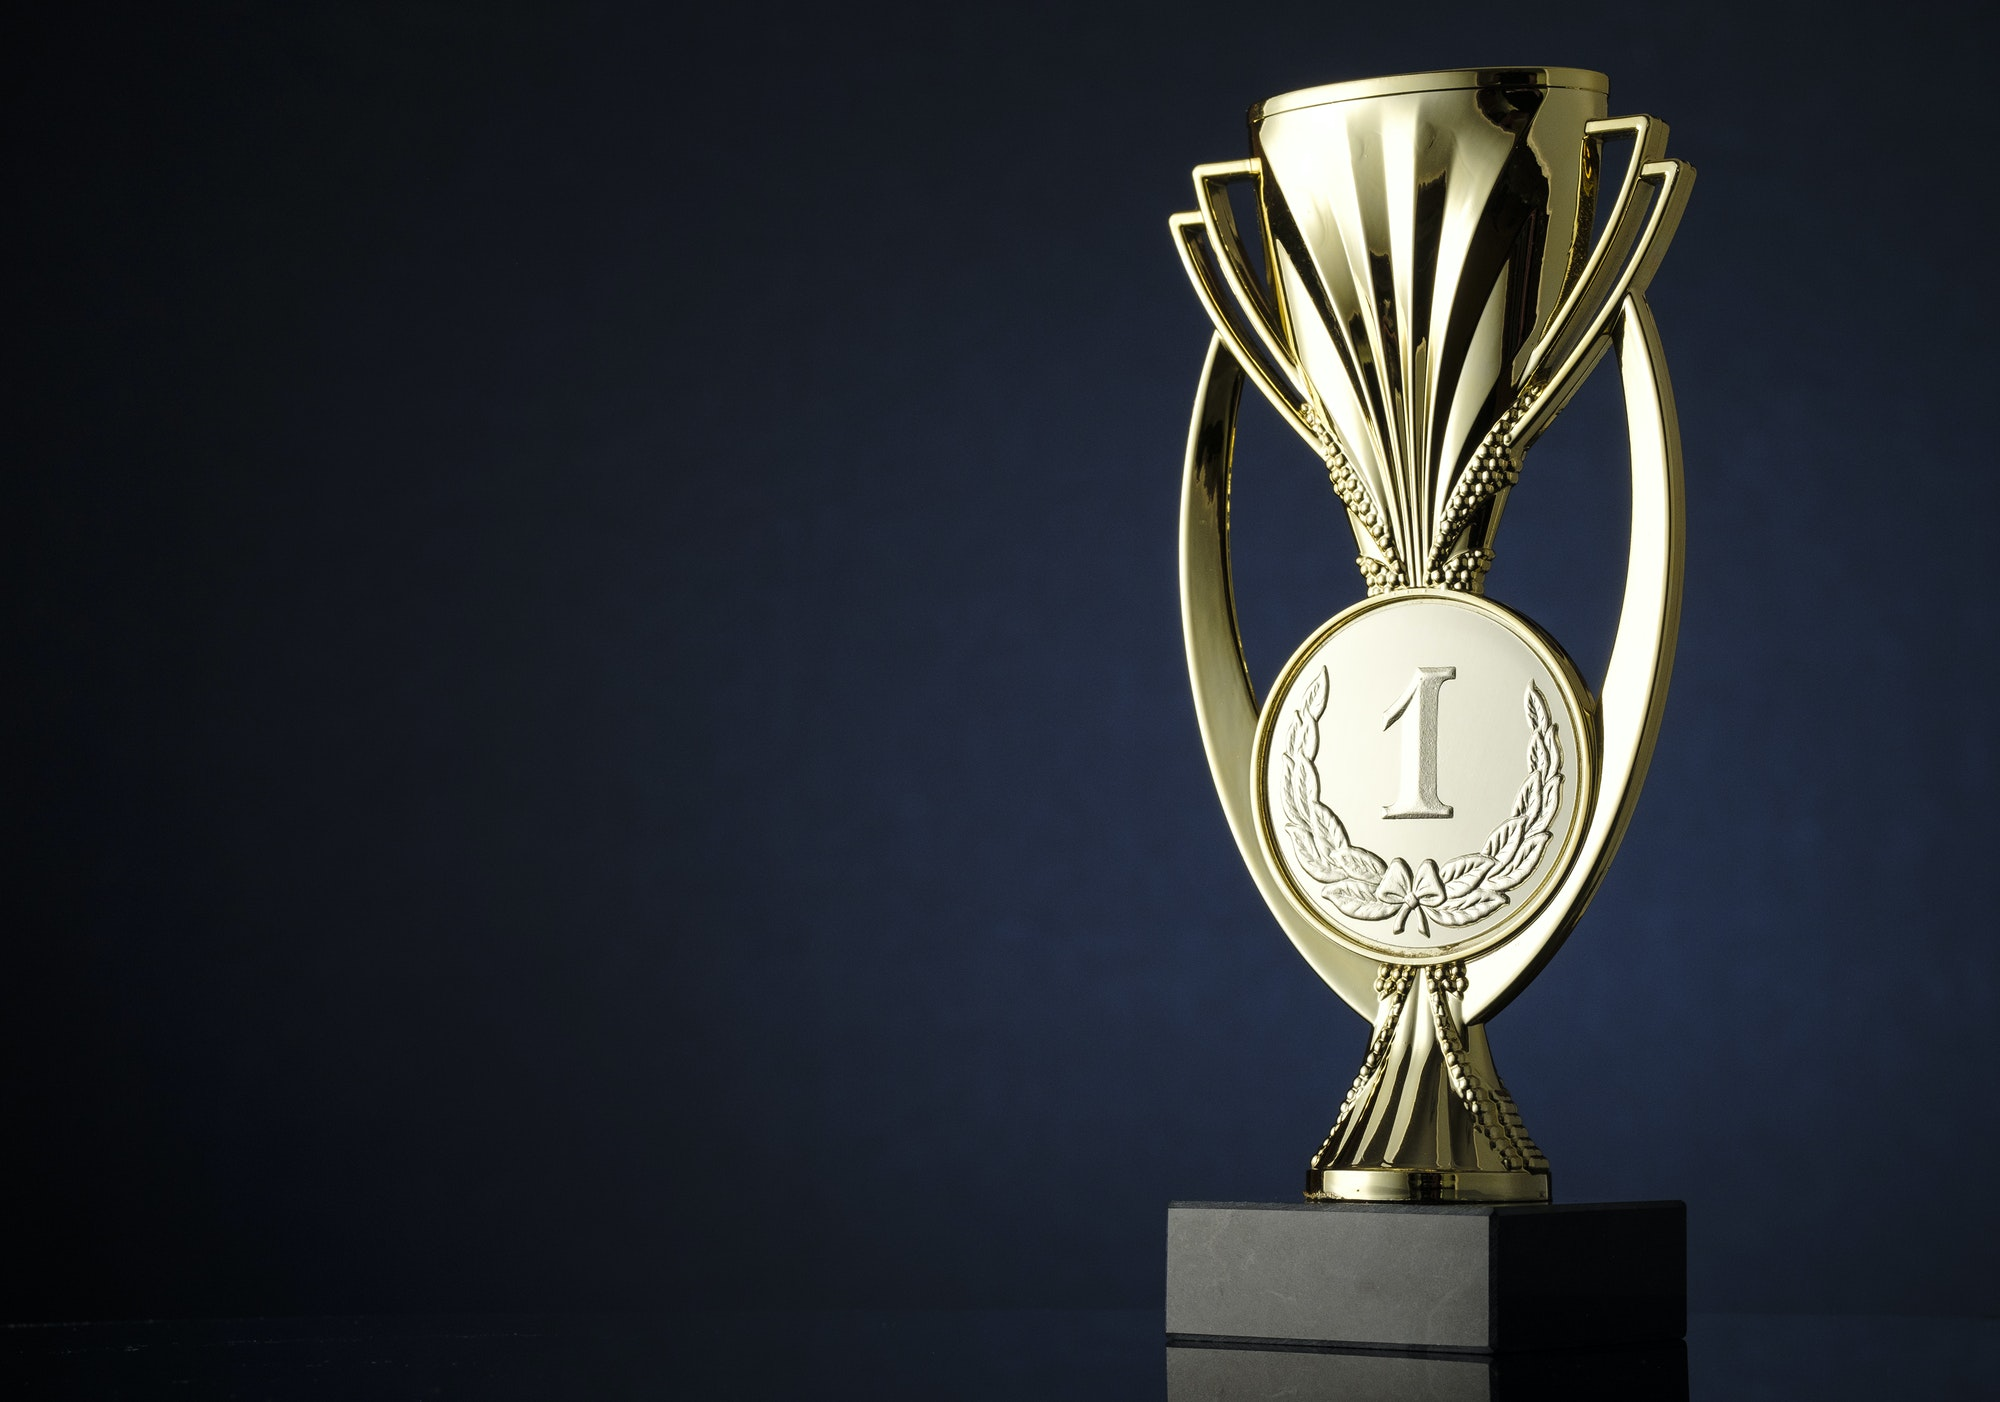 Gold cup or trophy with medallion for the winner